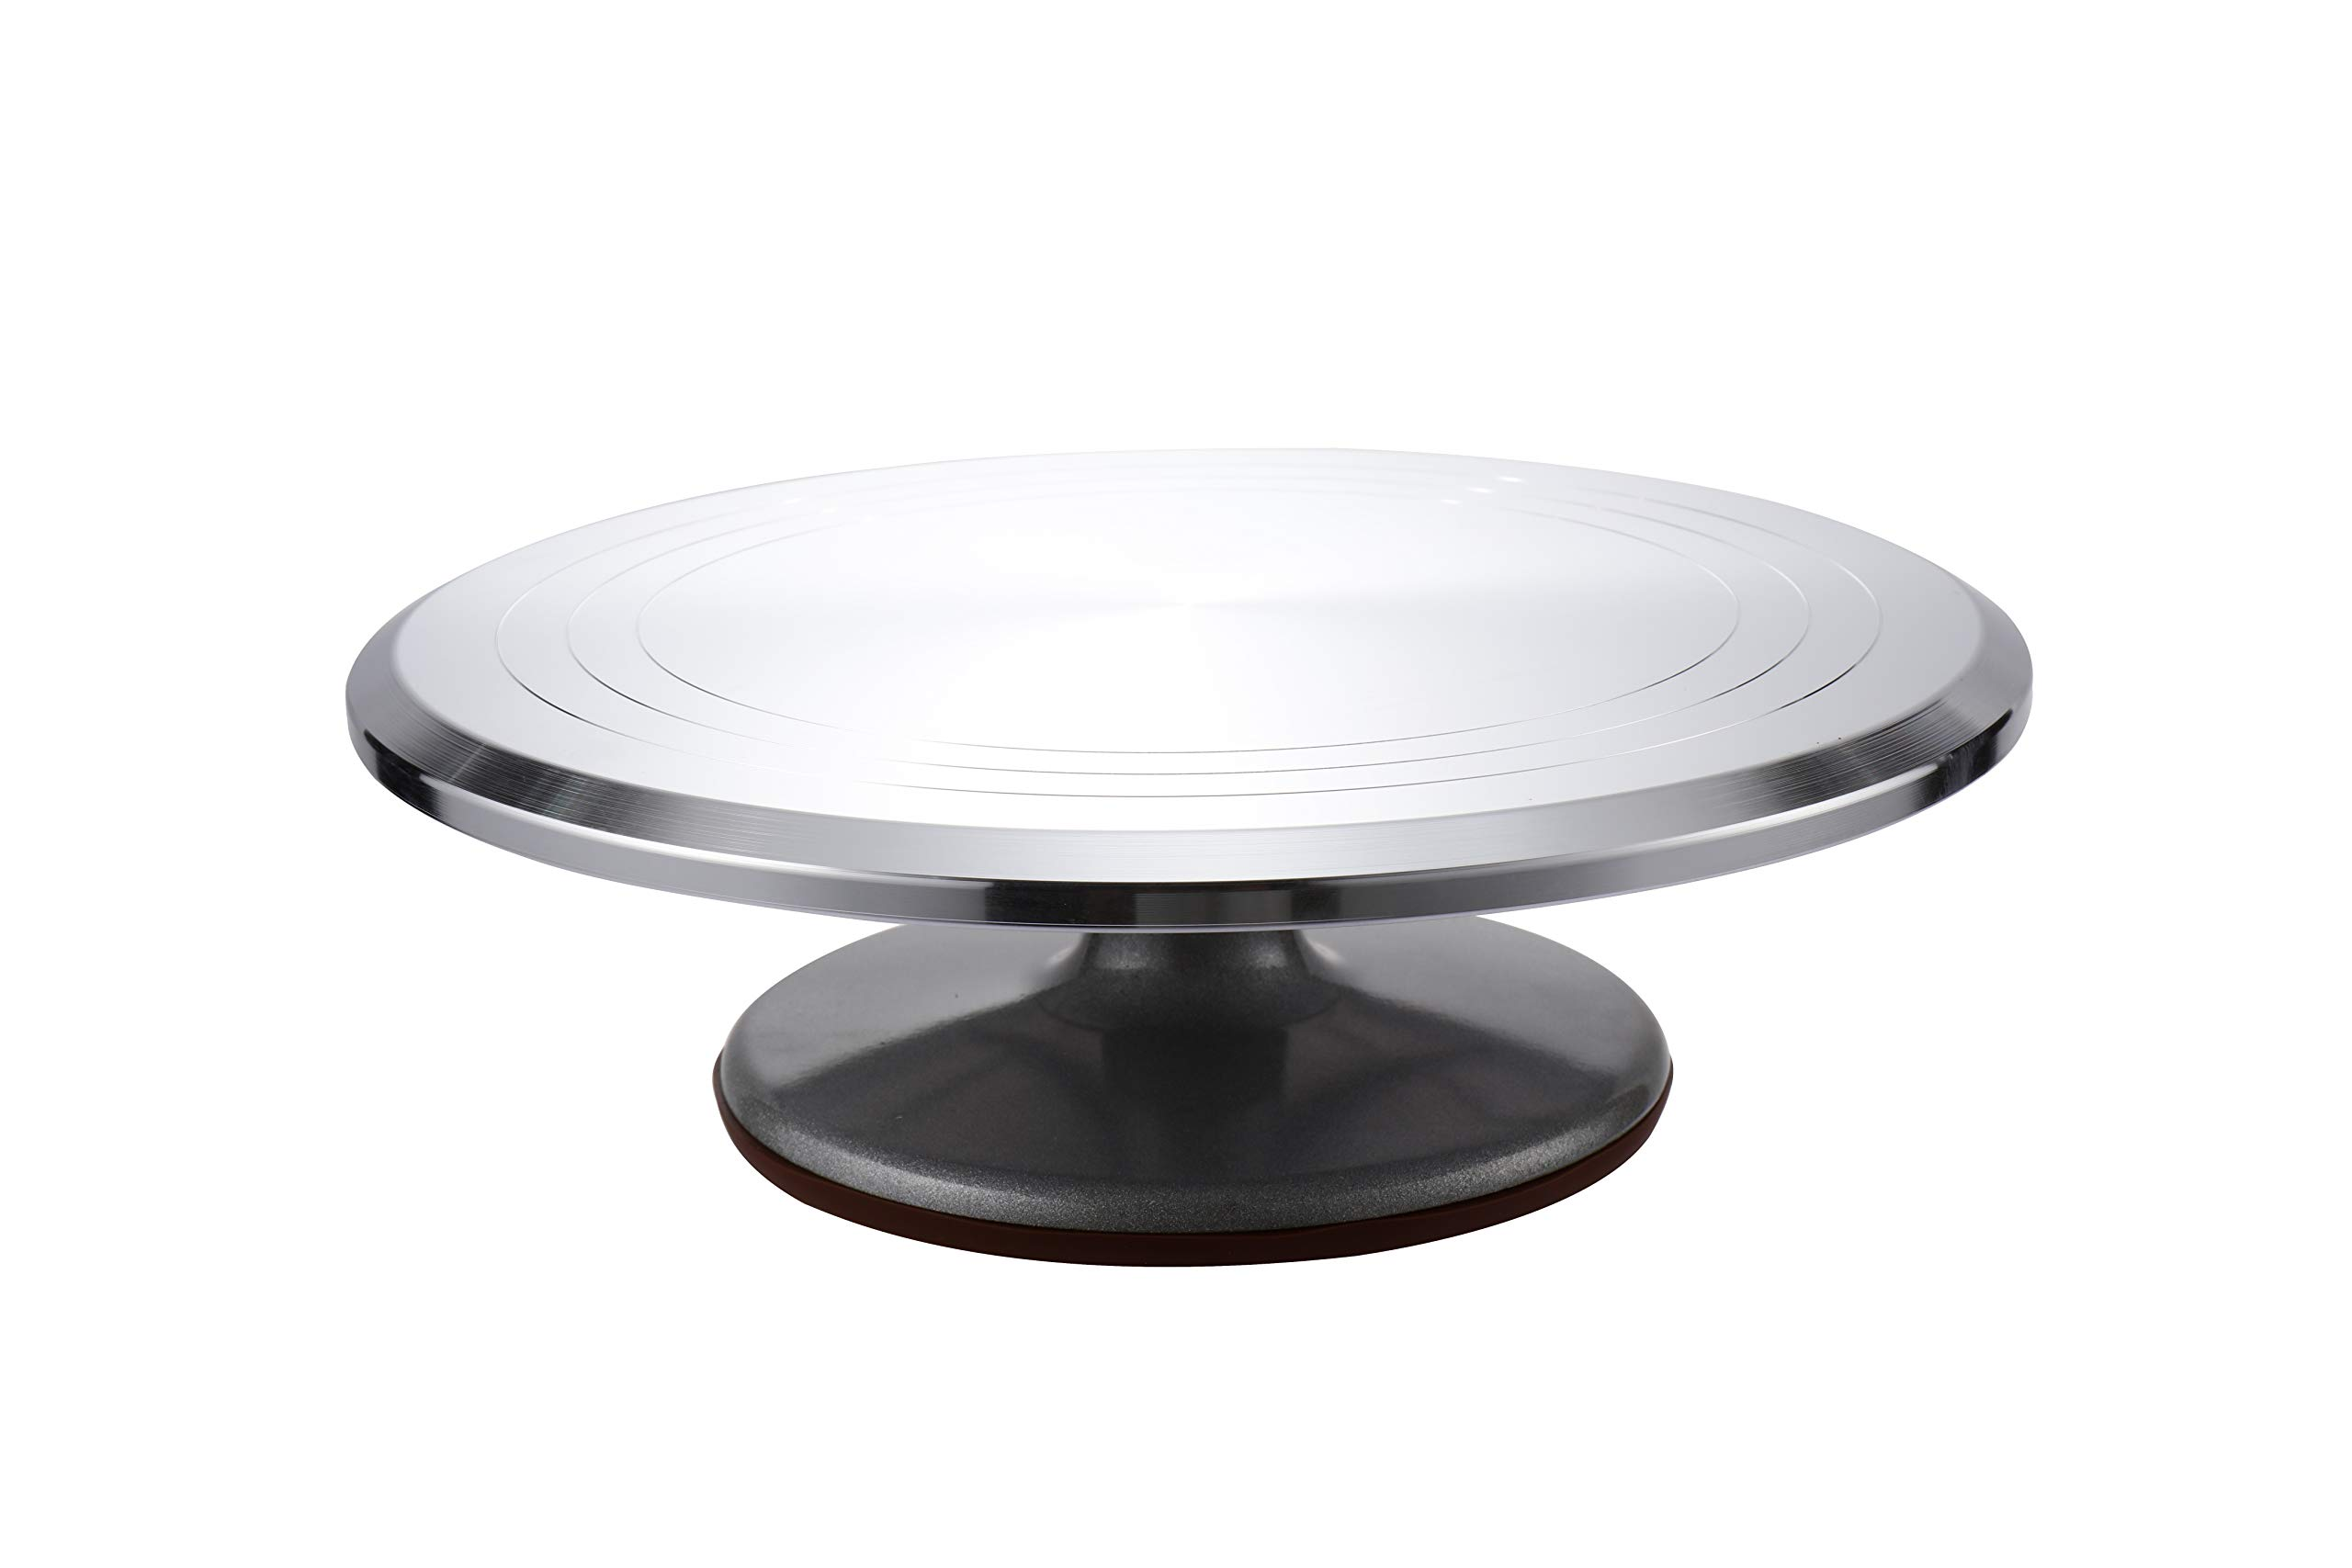 Decorating Turntable Desserts Construction Non slipping